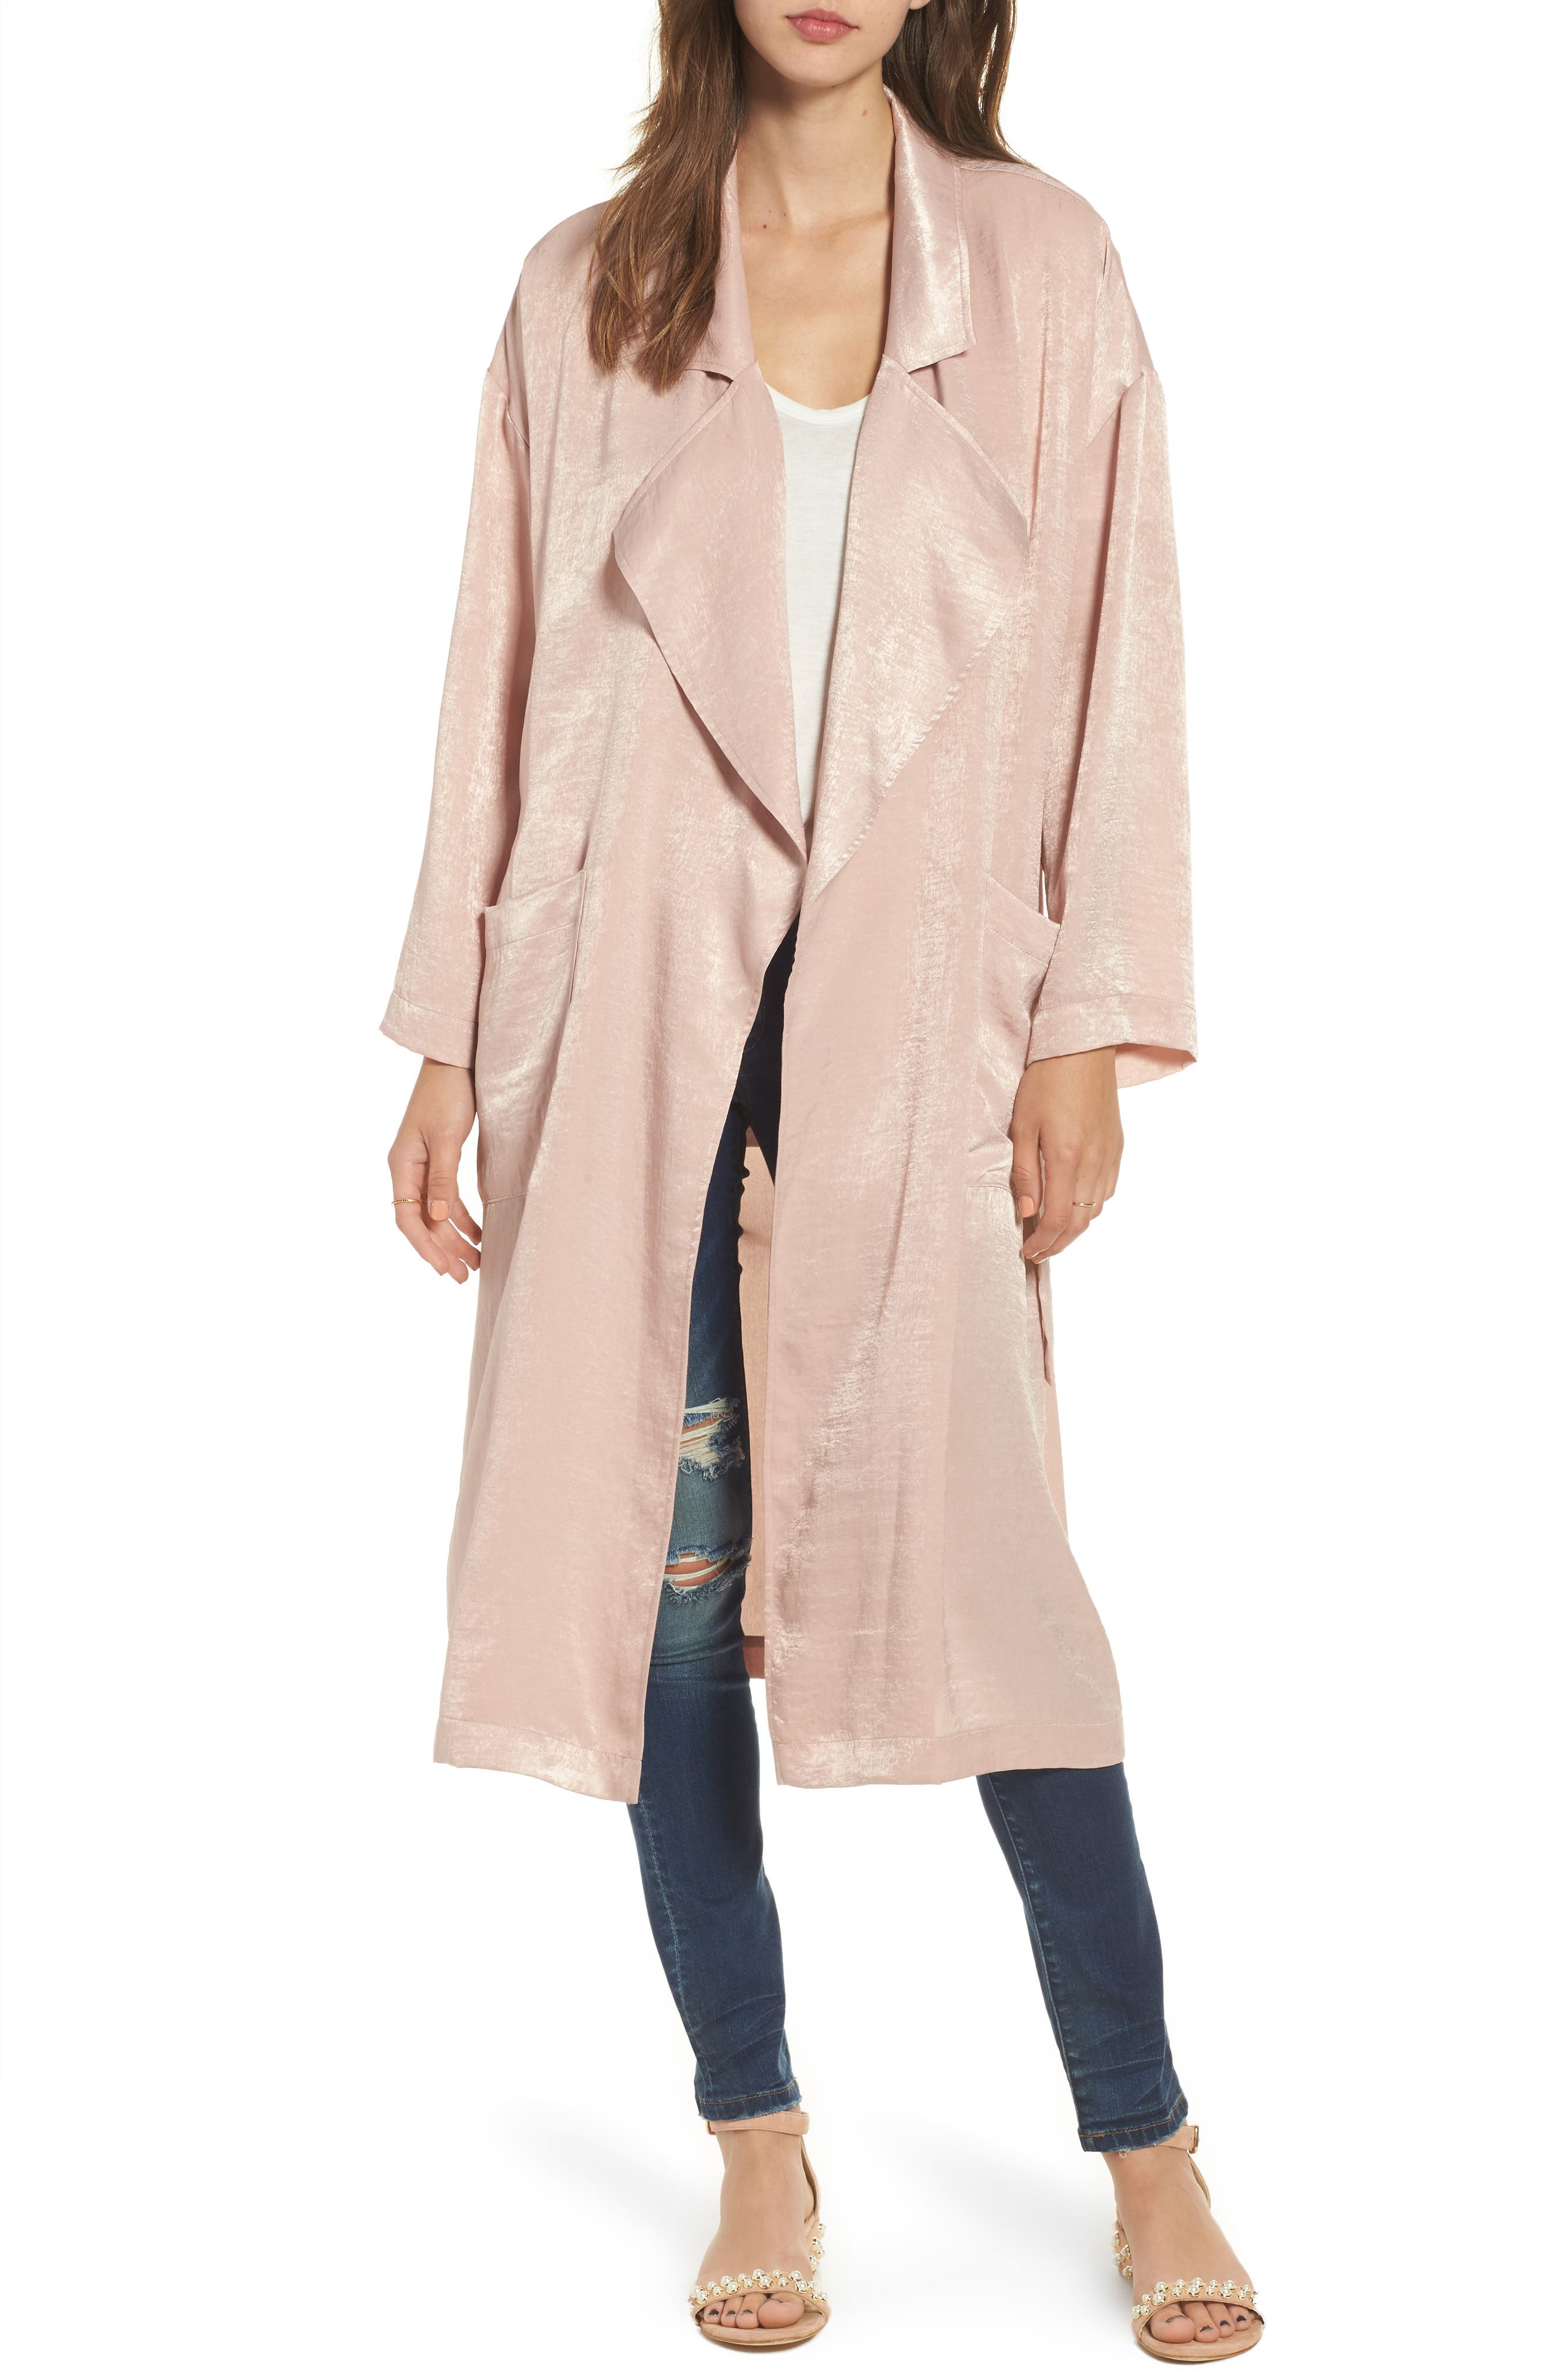 Satin Trench Coat,                             Main thumbnail 1, color,                             Pink Adobe